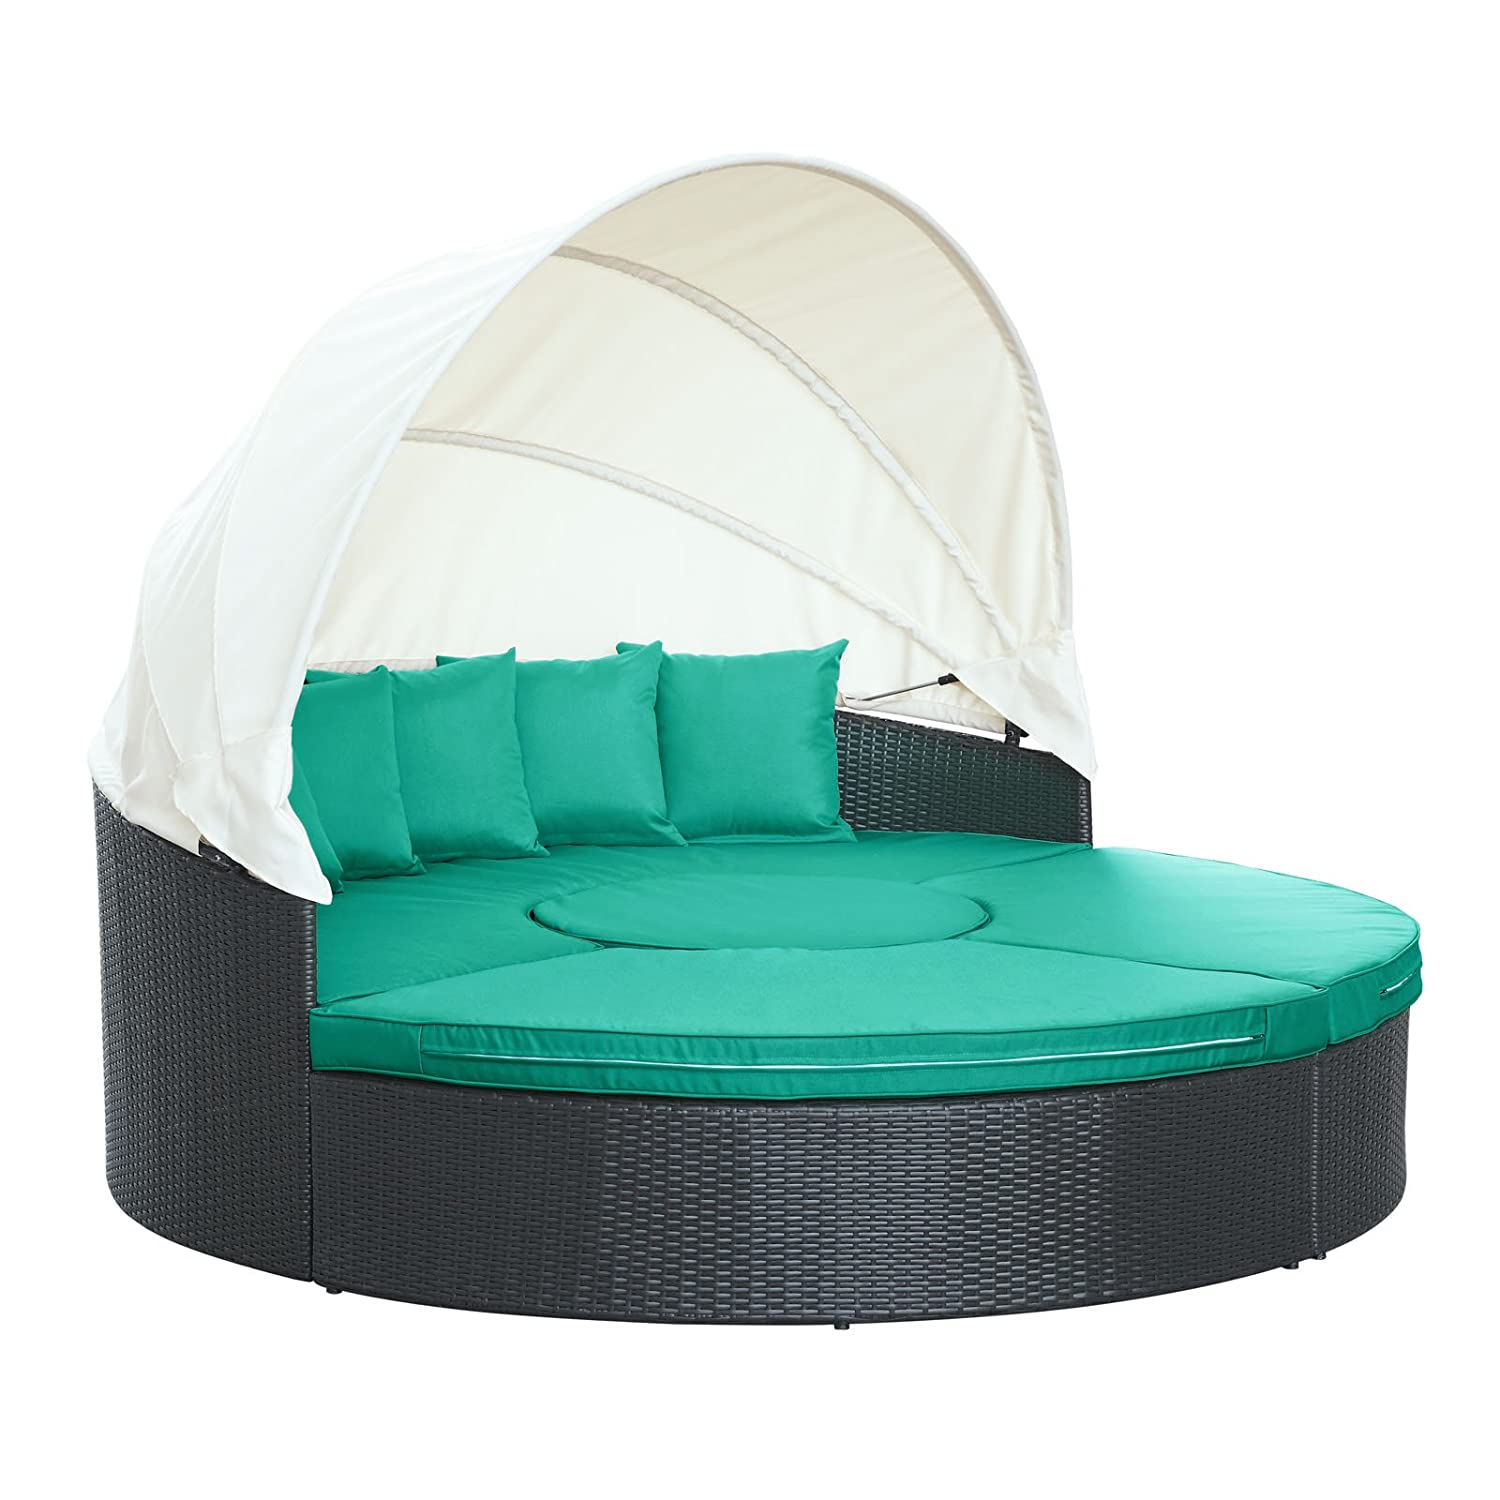 Amazon Modway Quest Circular Outdoor Wicker Rattan Patio Daybed With Canopy In Espresso Turquoise Garden